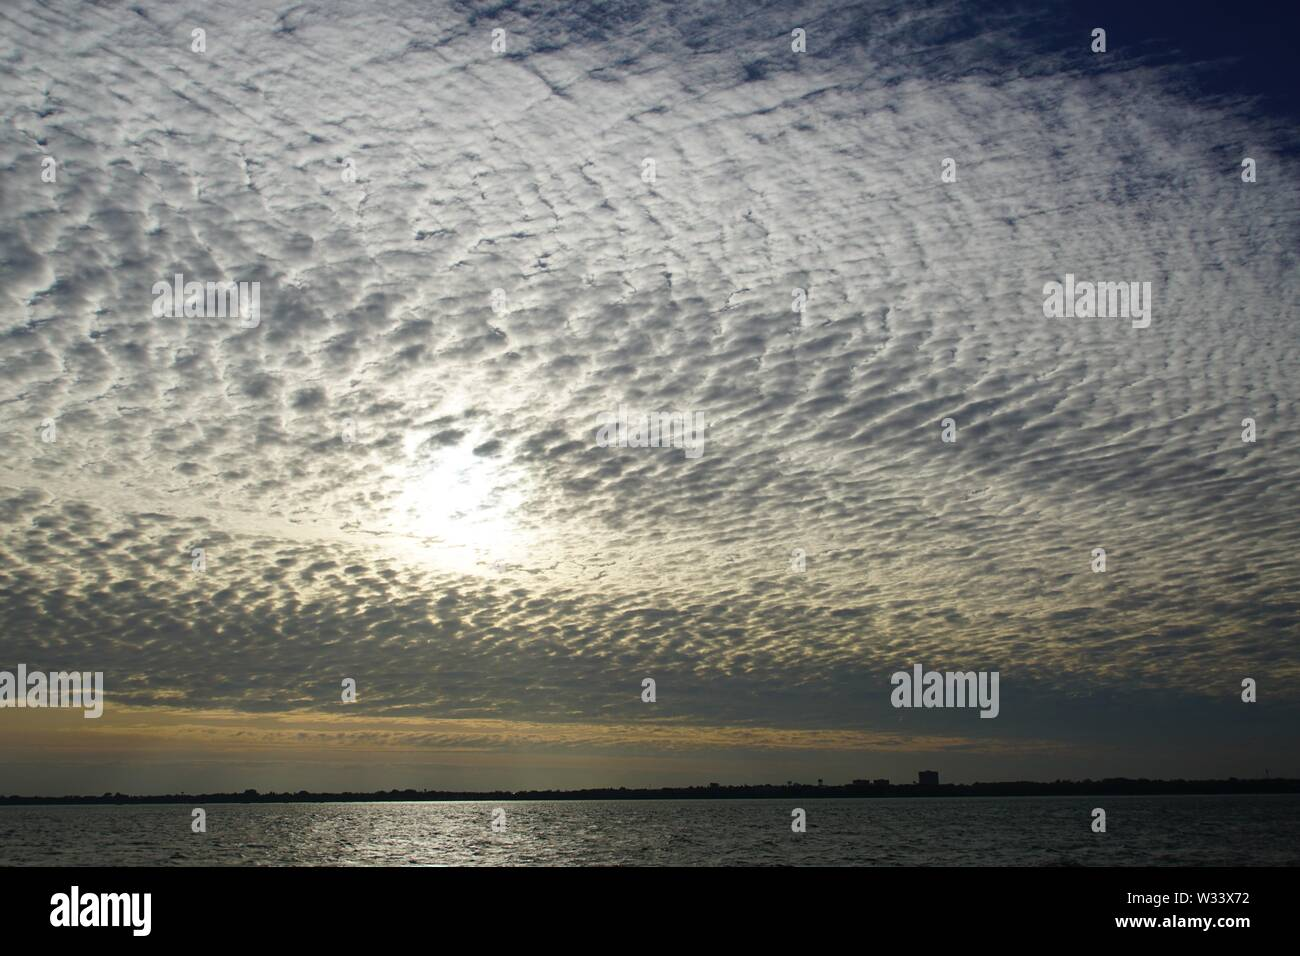 Dramatic Morning Sky with a Cluster of small dense Clouds over Water Stock Photo